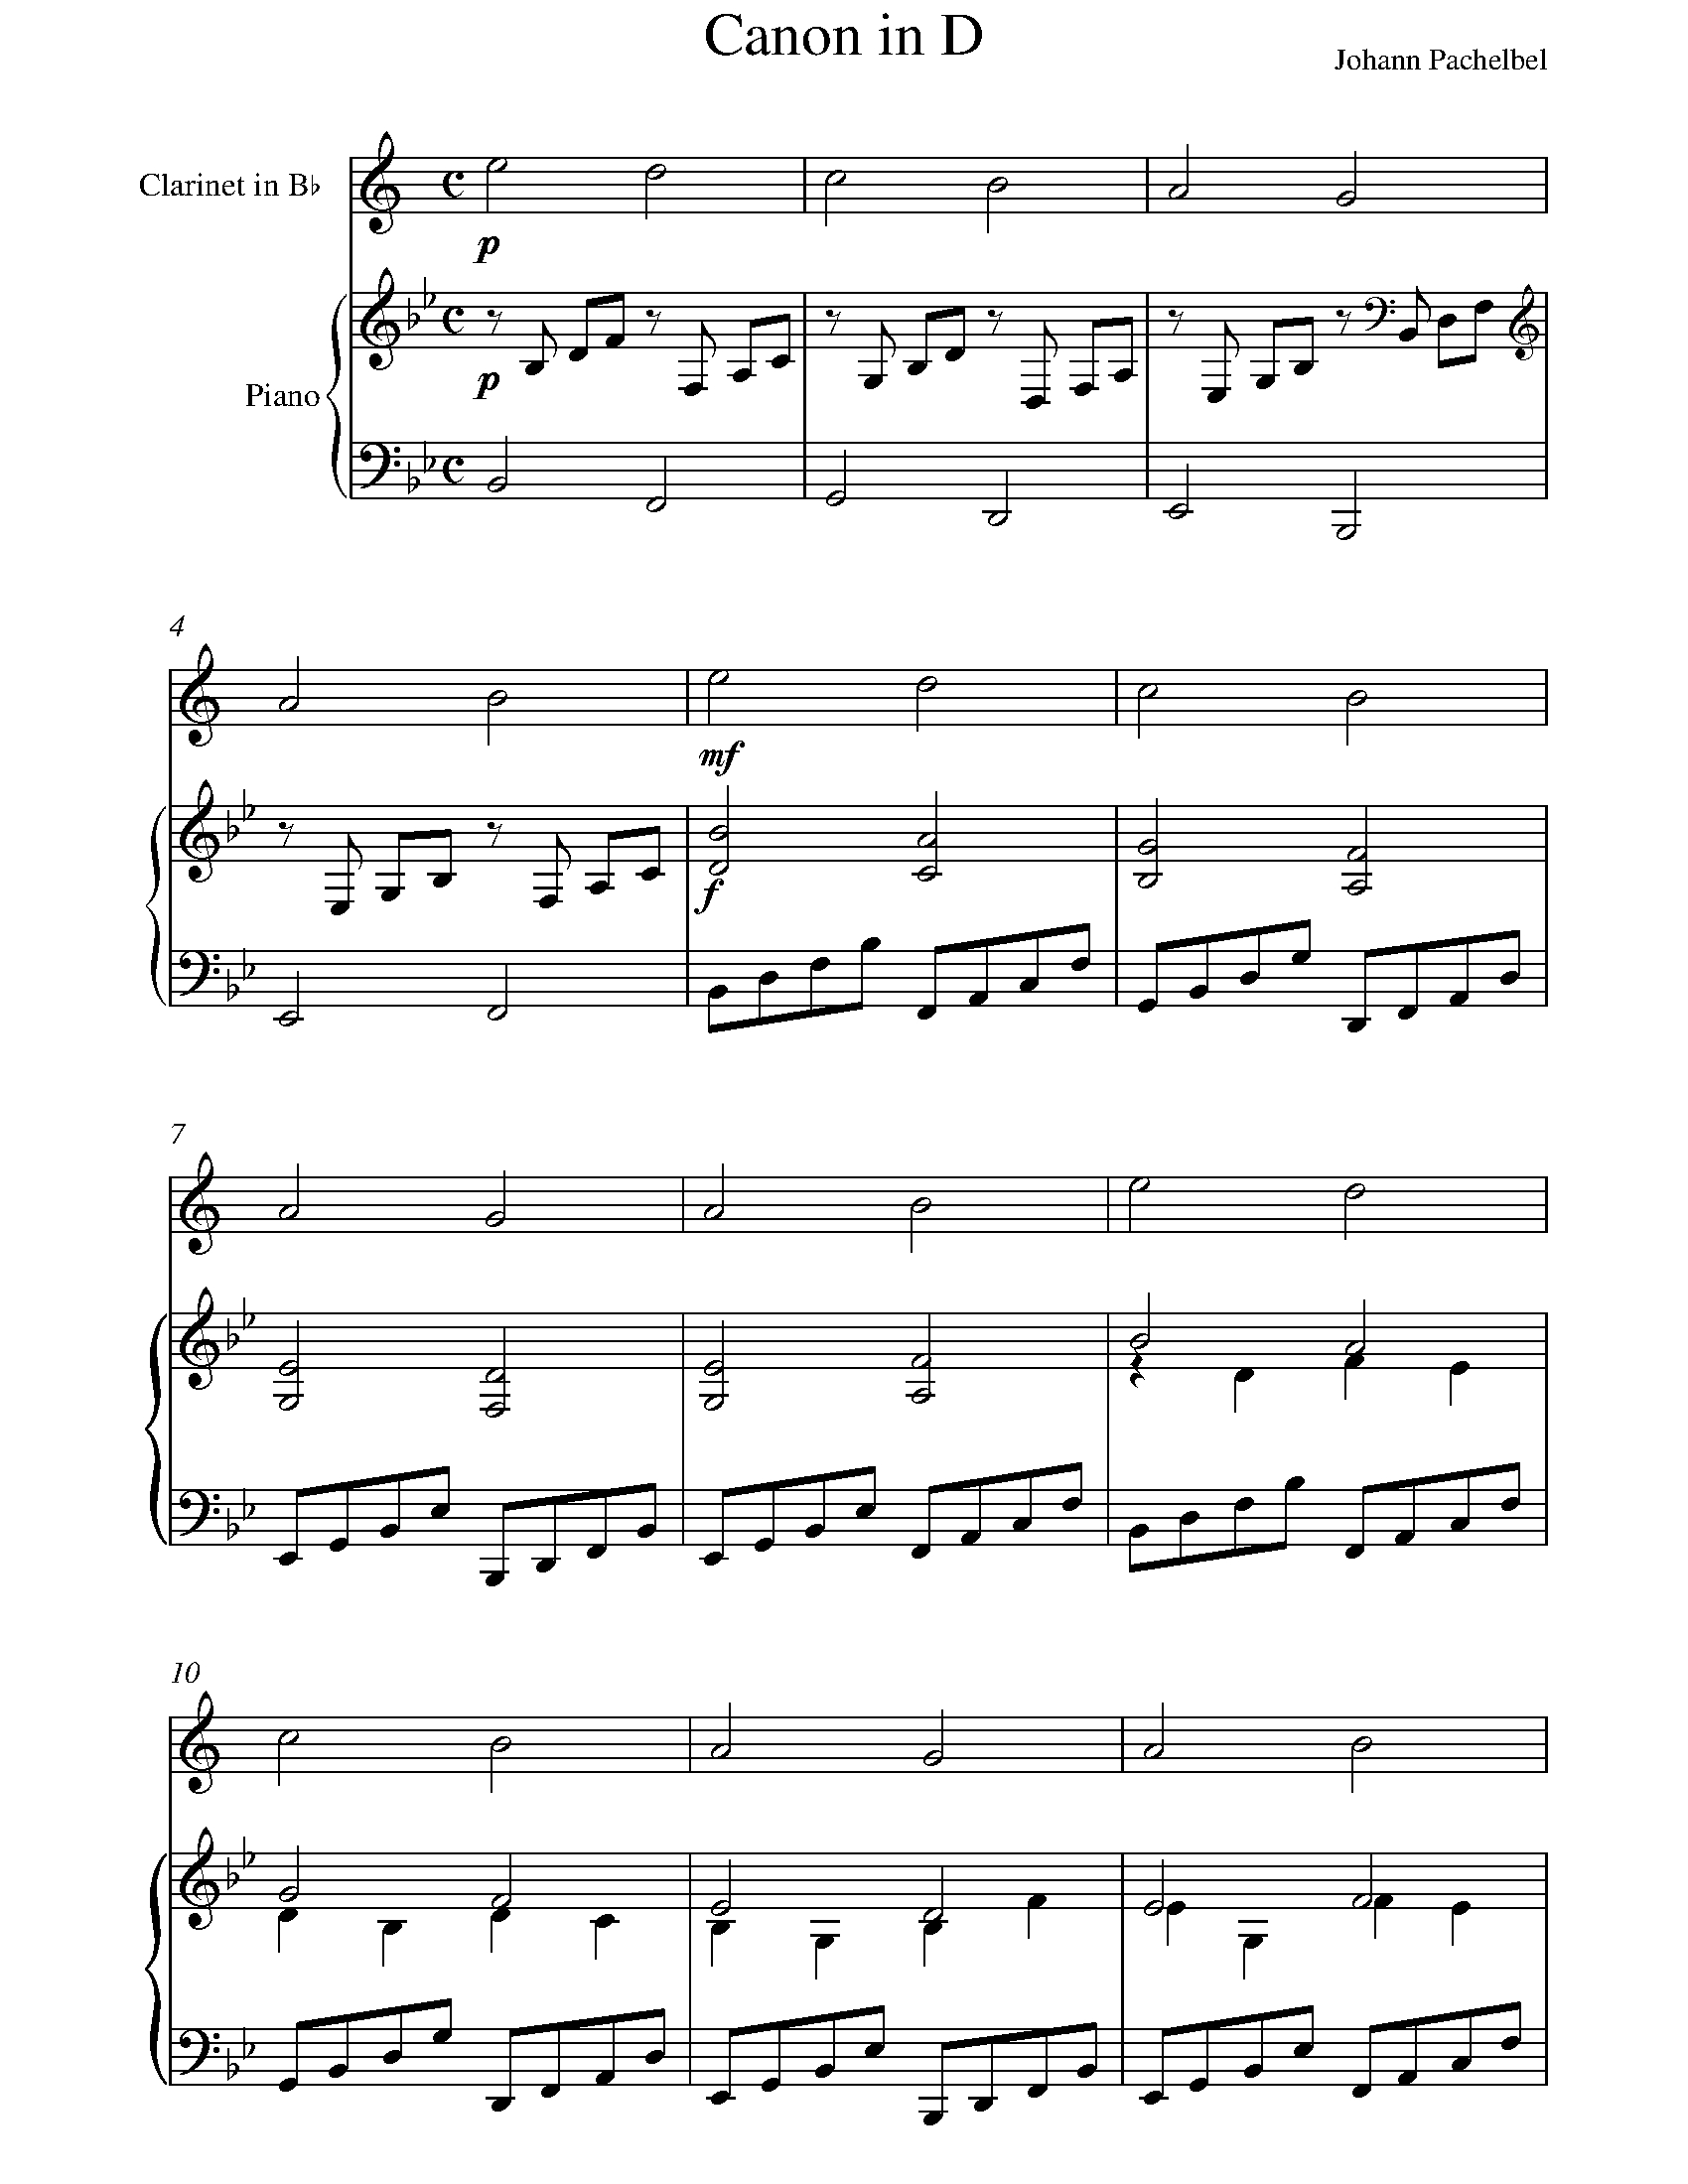 Pachelbel - Canon In D Sheet Music For Clarinet - 8Notes - Canon In D Piano Sheet Music Free Printable